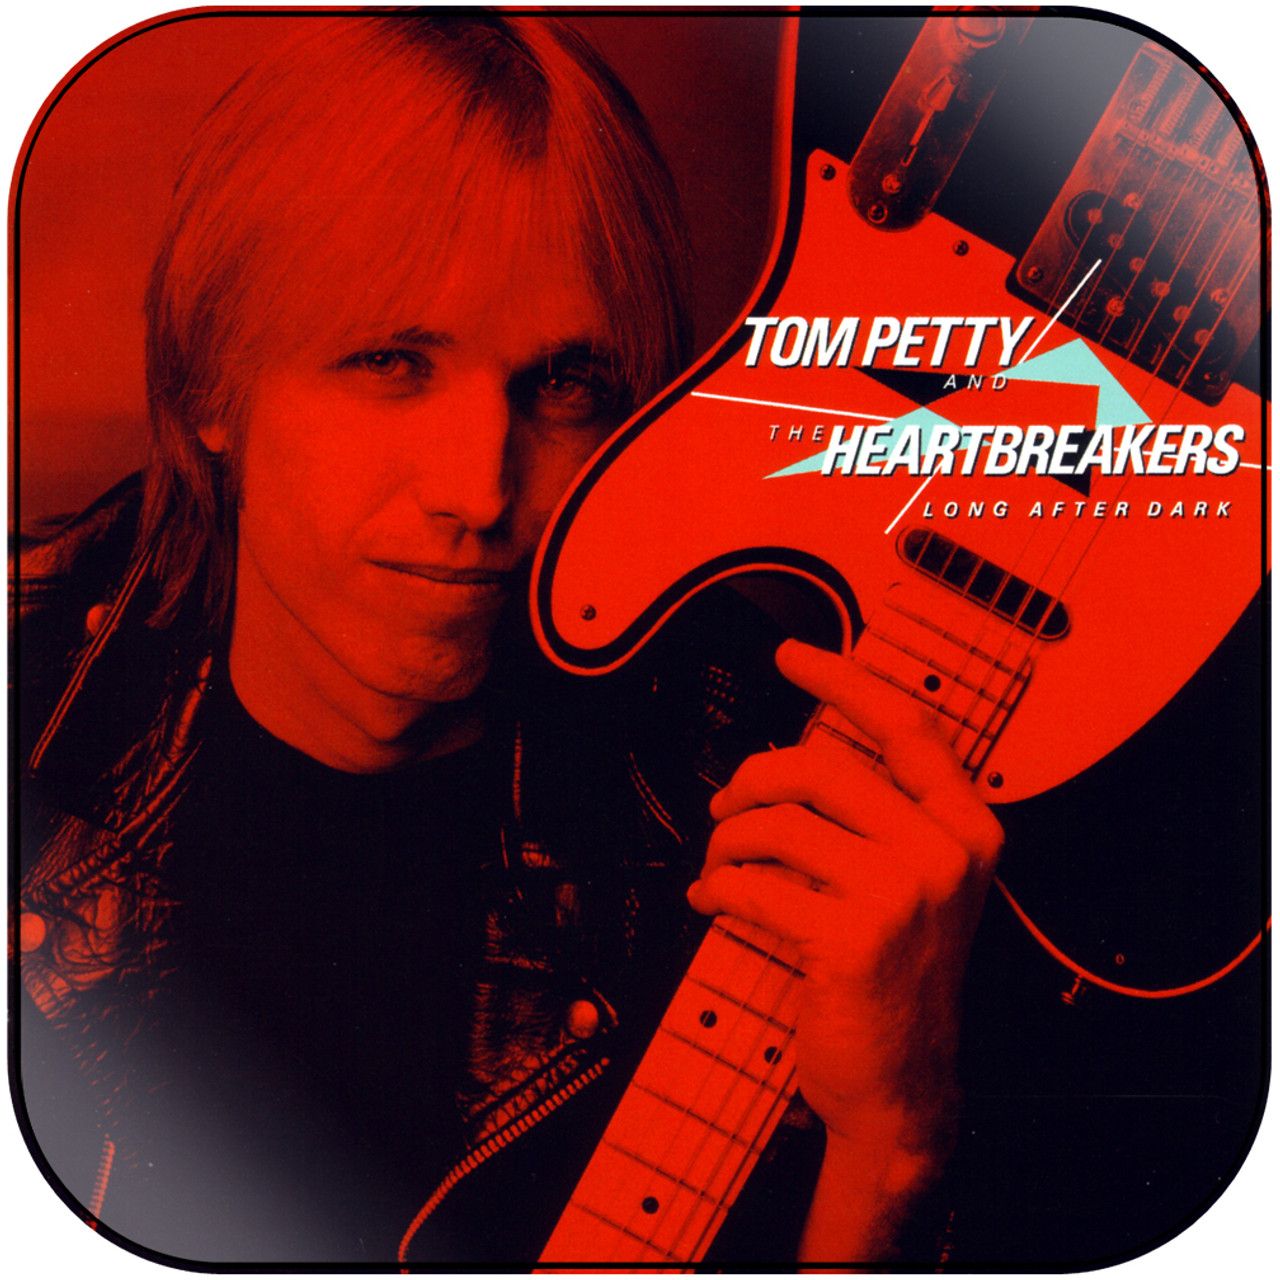 Tom Petty And The Heartbreakers Long After Dark Album Cover Sticker Album Cover Sticker